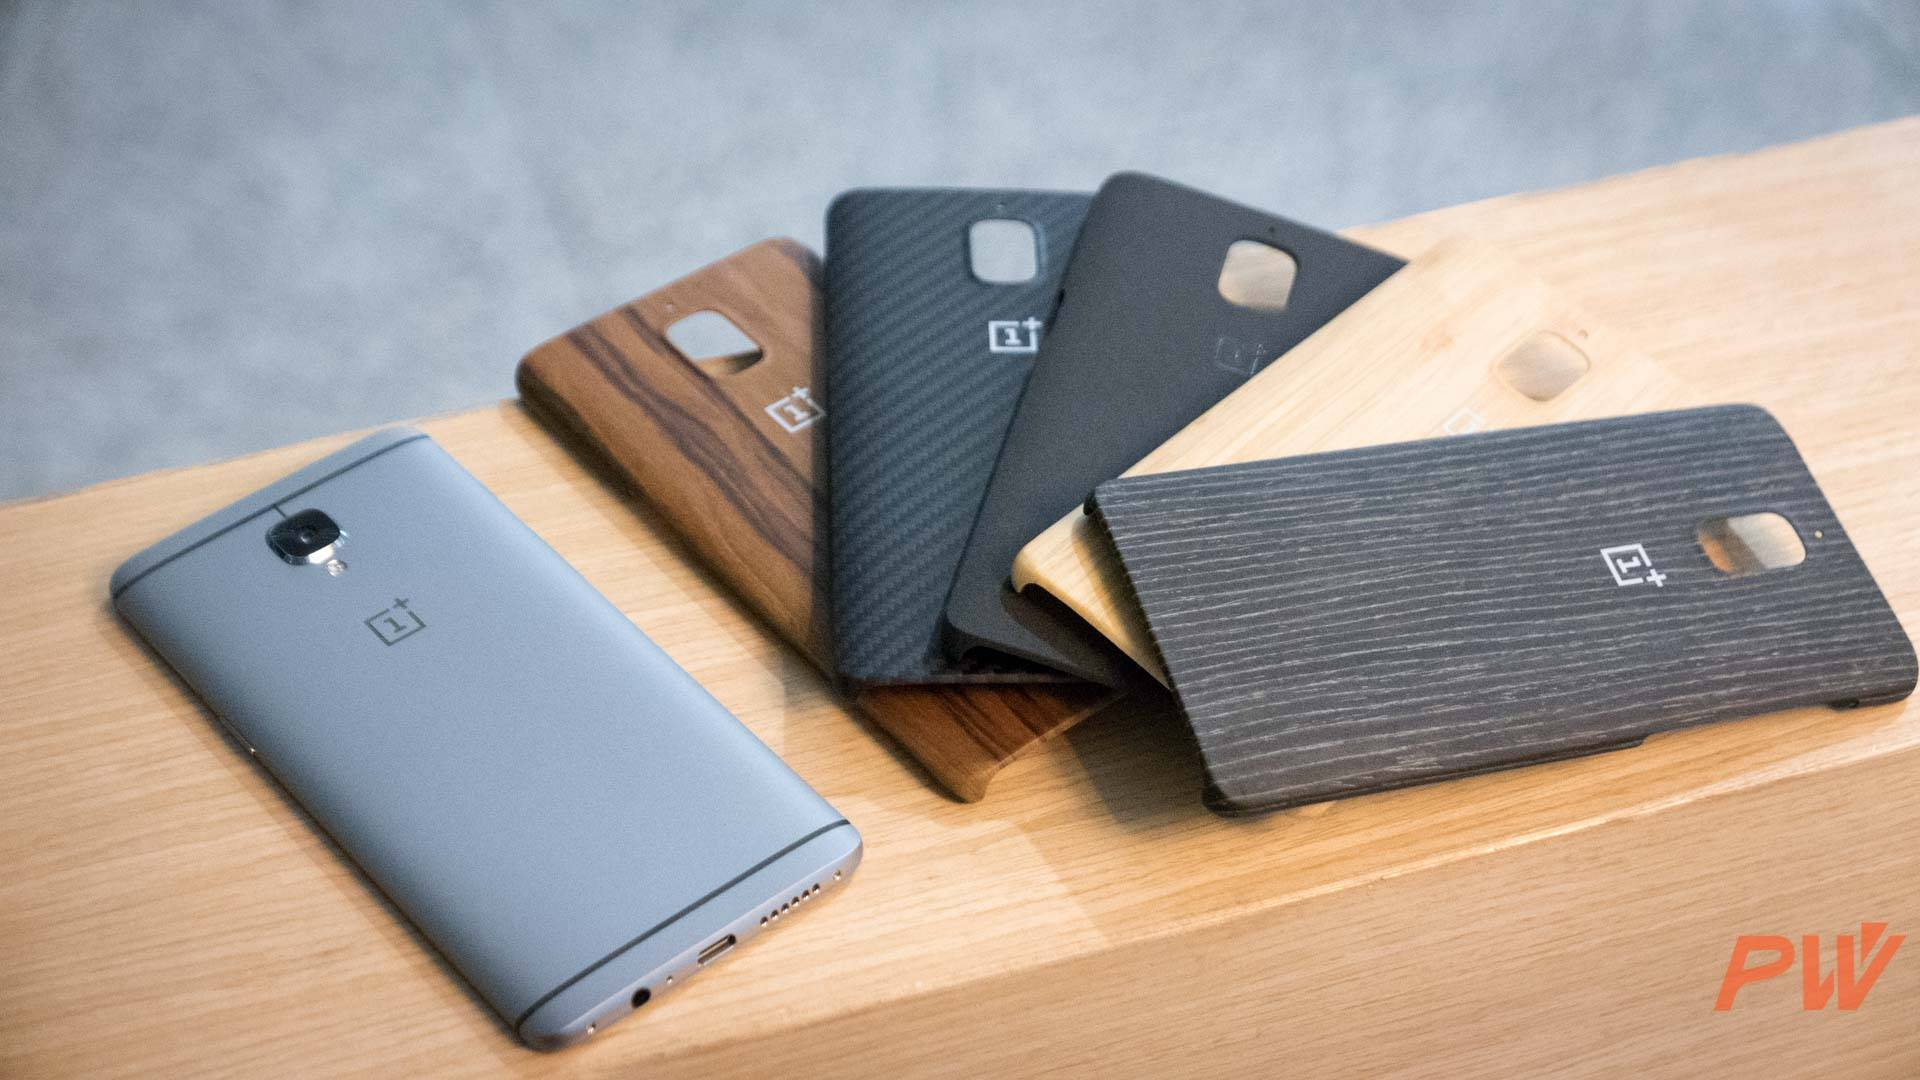 oneplus 3 PingWest Photo By Hao Ying-16